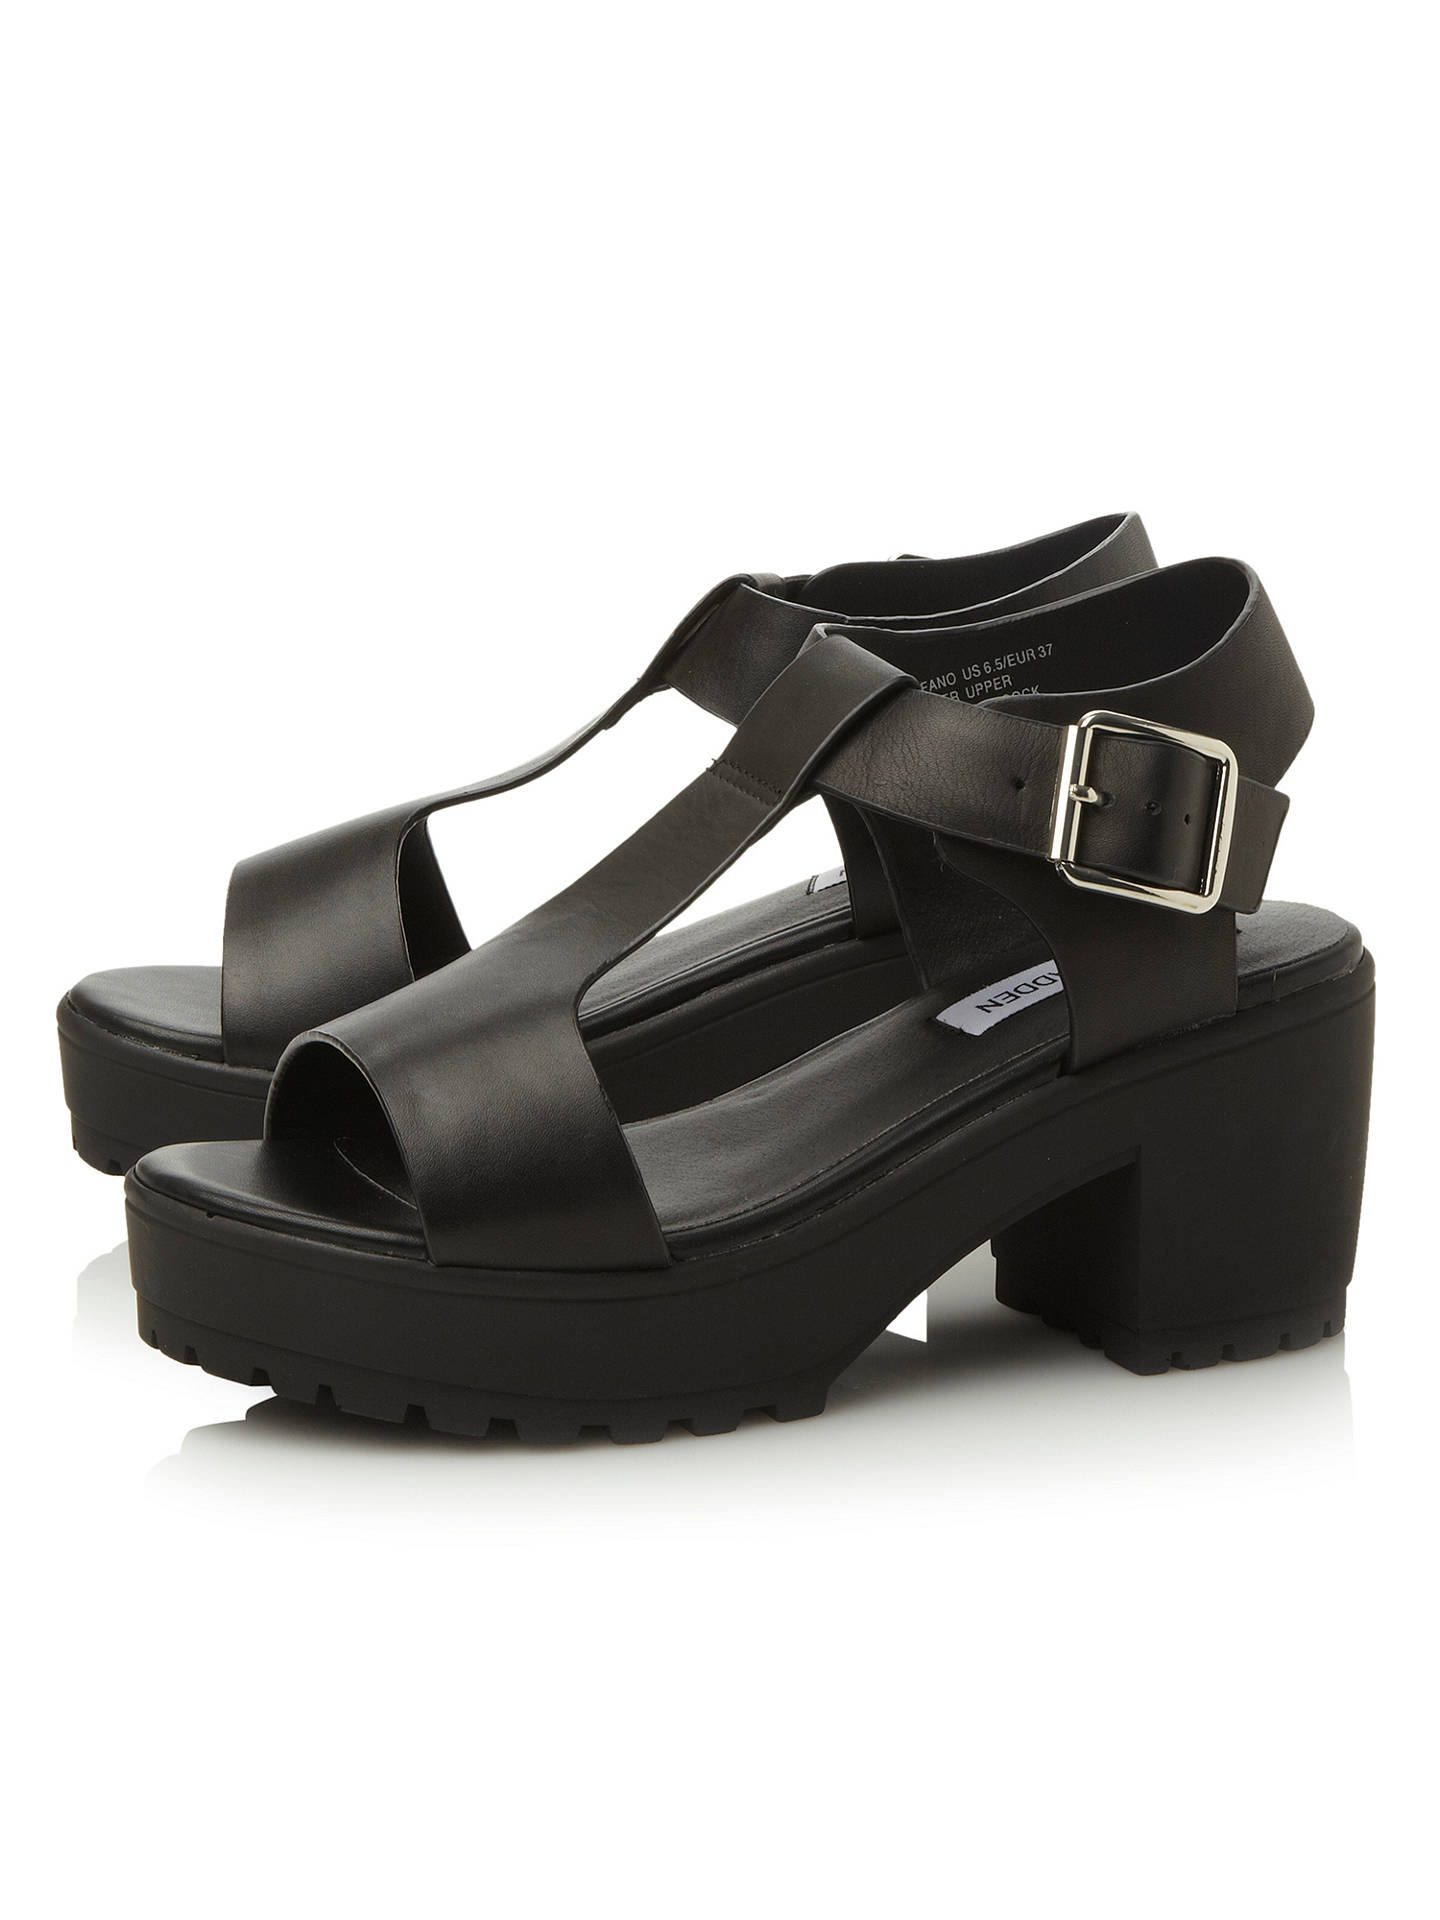 7a13646c537 ... Buy Steve Madden Stefano Chunky Leather T-Bar Sandals